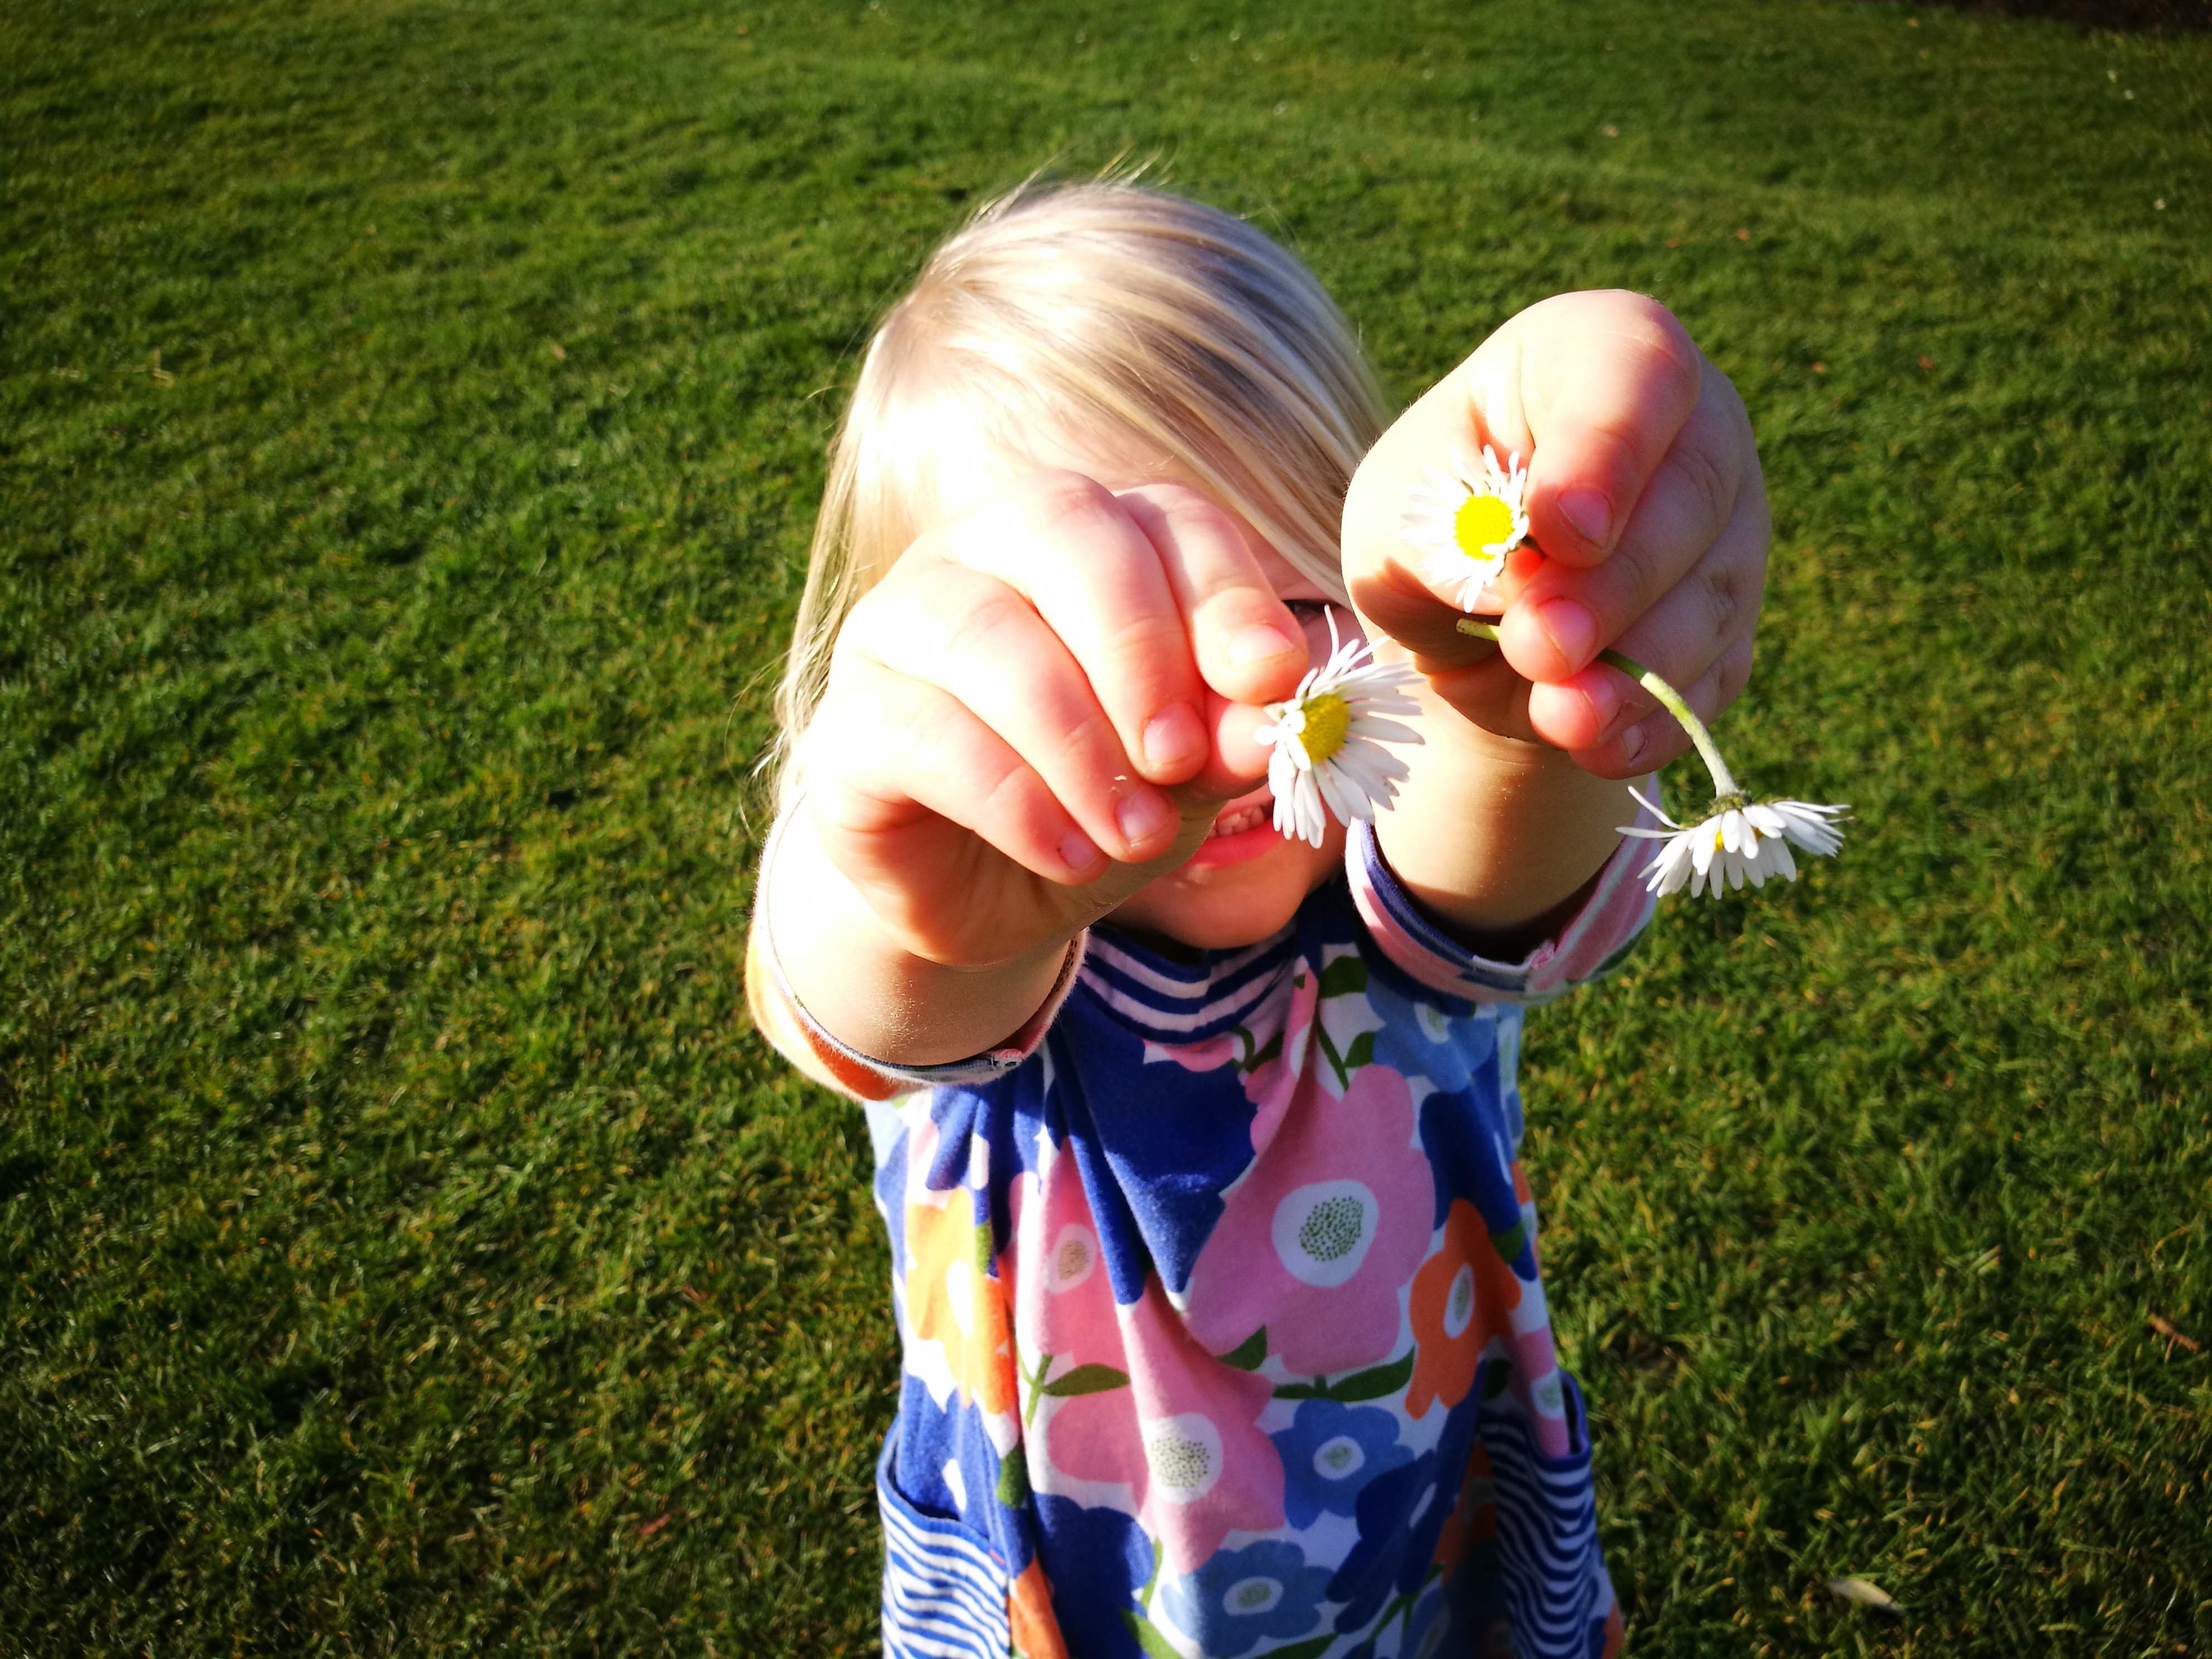 My daughter thrusting a handful of illicit daisies into my face.